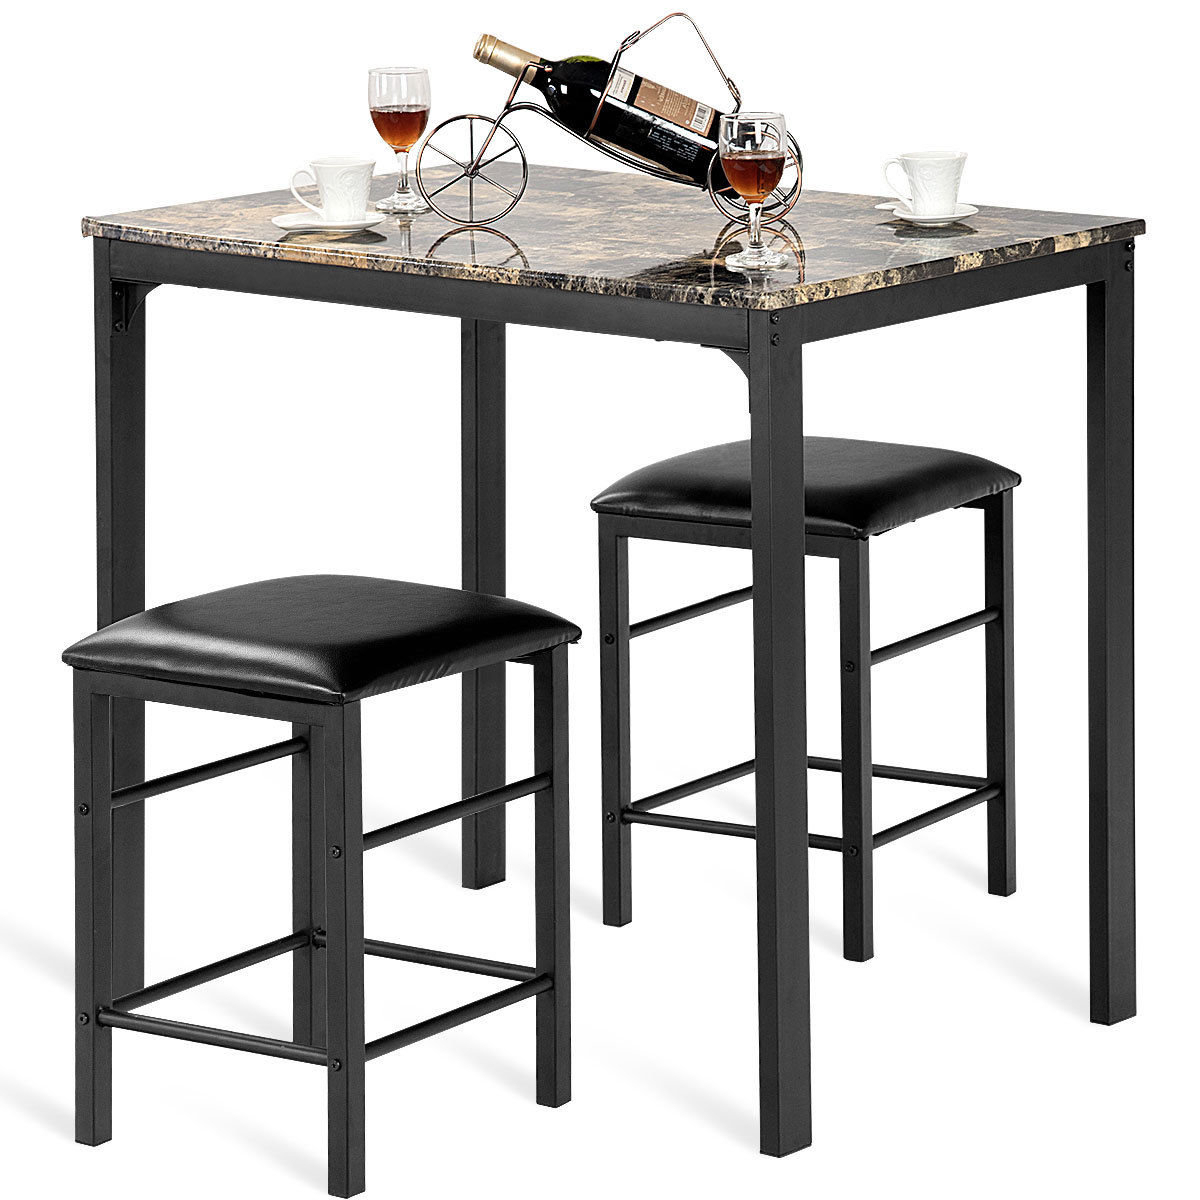 Miskell 5 Piece Dining Sets Inside Latest Winston Porter Mitzel 3 Piece Dining Set & Reviews (View 14 of 25)